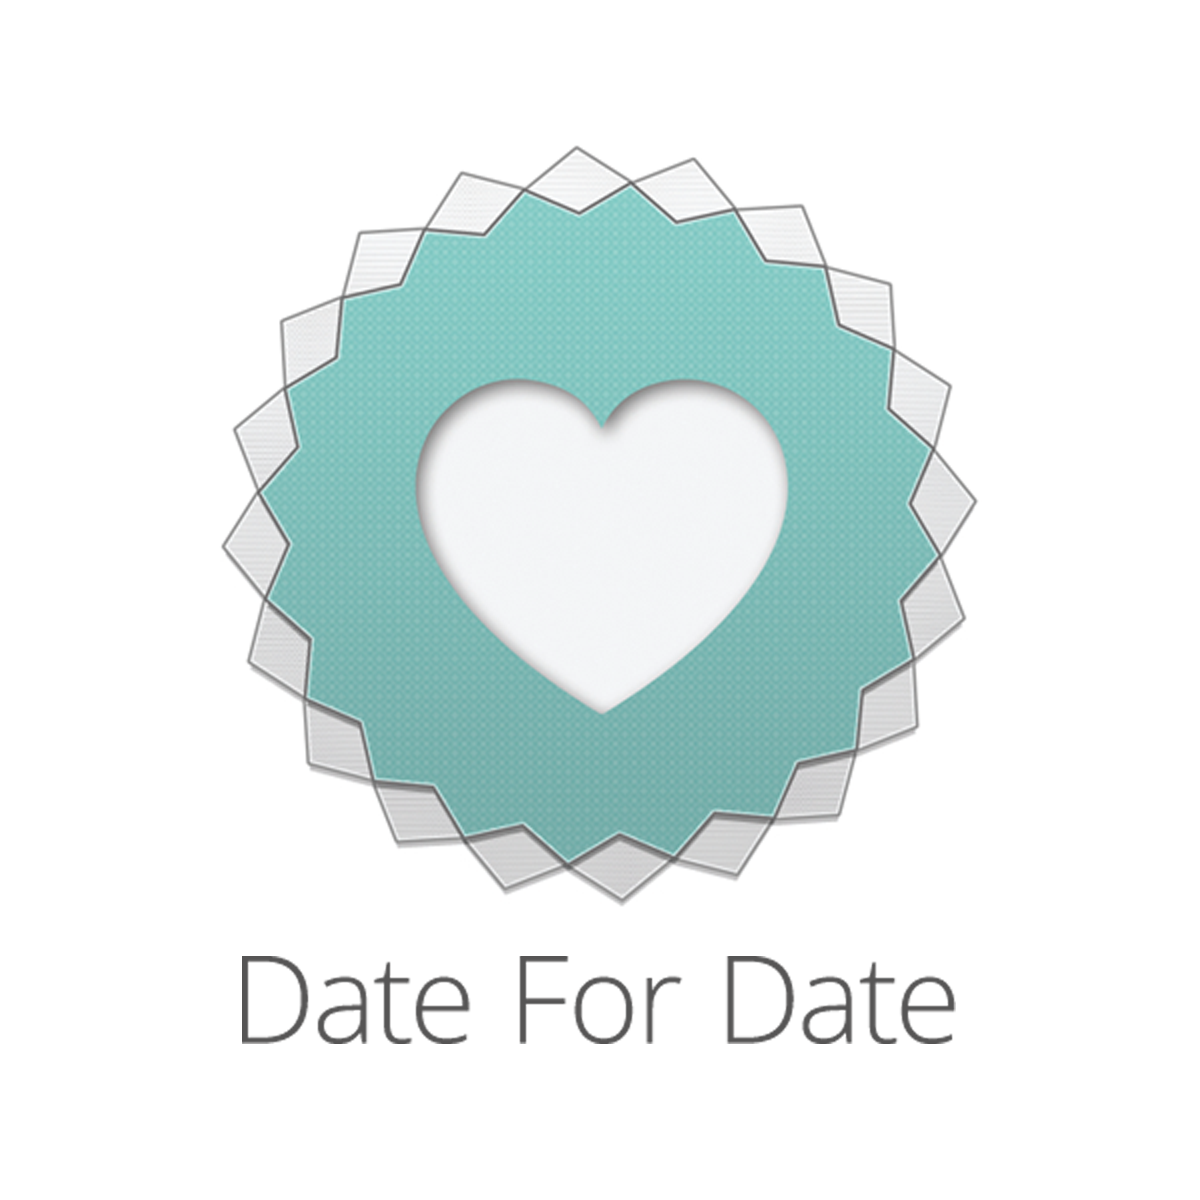 dating app sverige datingsidor